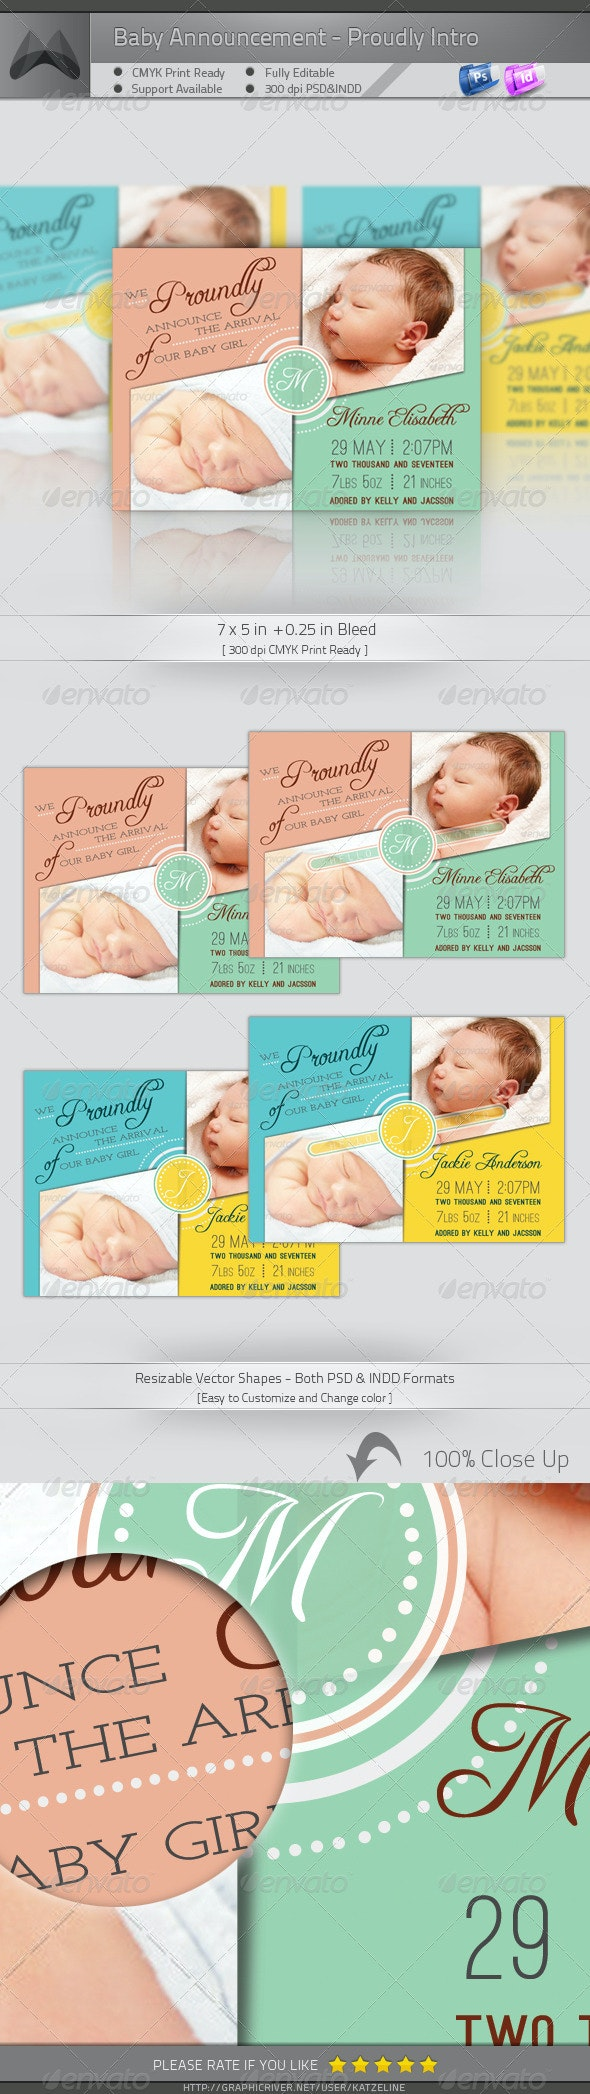 Baby Announcement Card - Proudly Intro - Family Cards & Invites